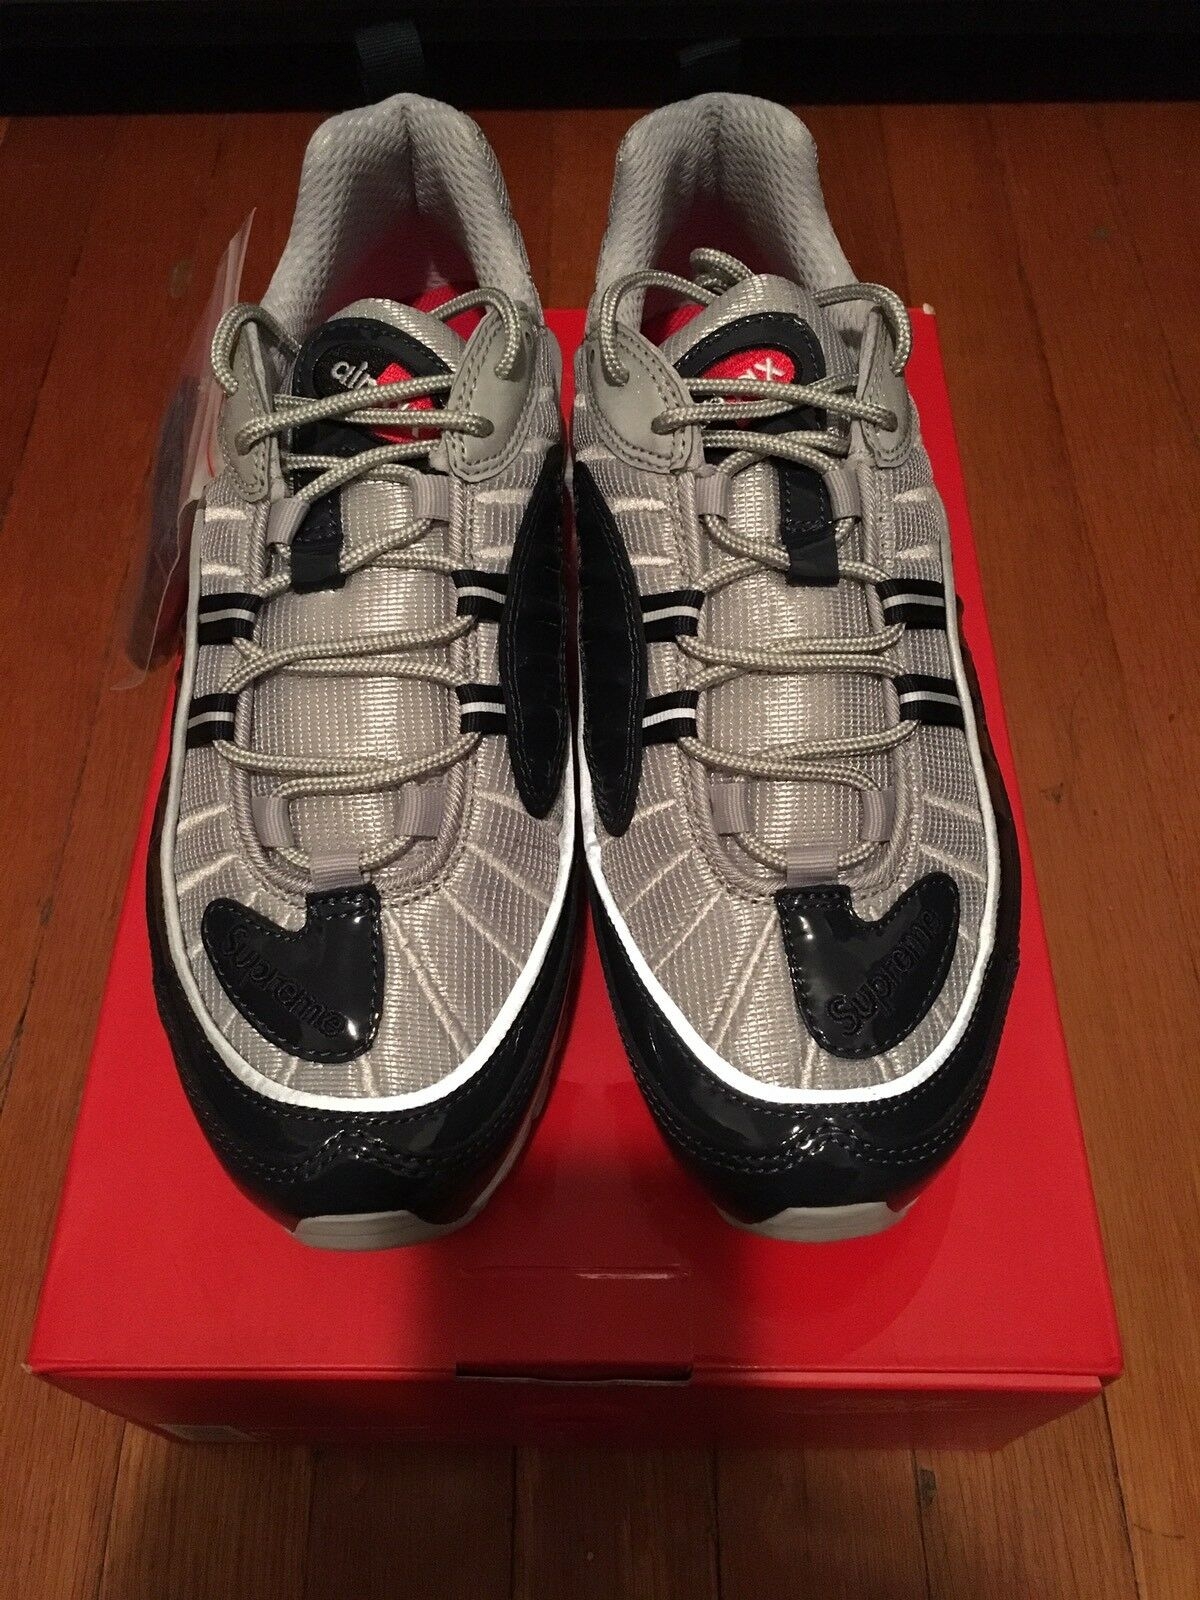 DS Supreme x Nike Air Max 98 Size 8 Limited Edition Obsidian silver Supreme Bogo